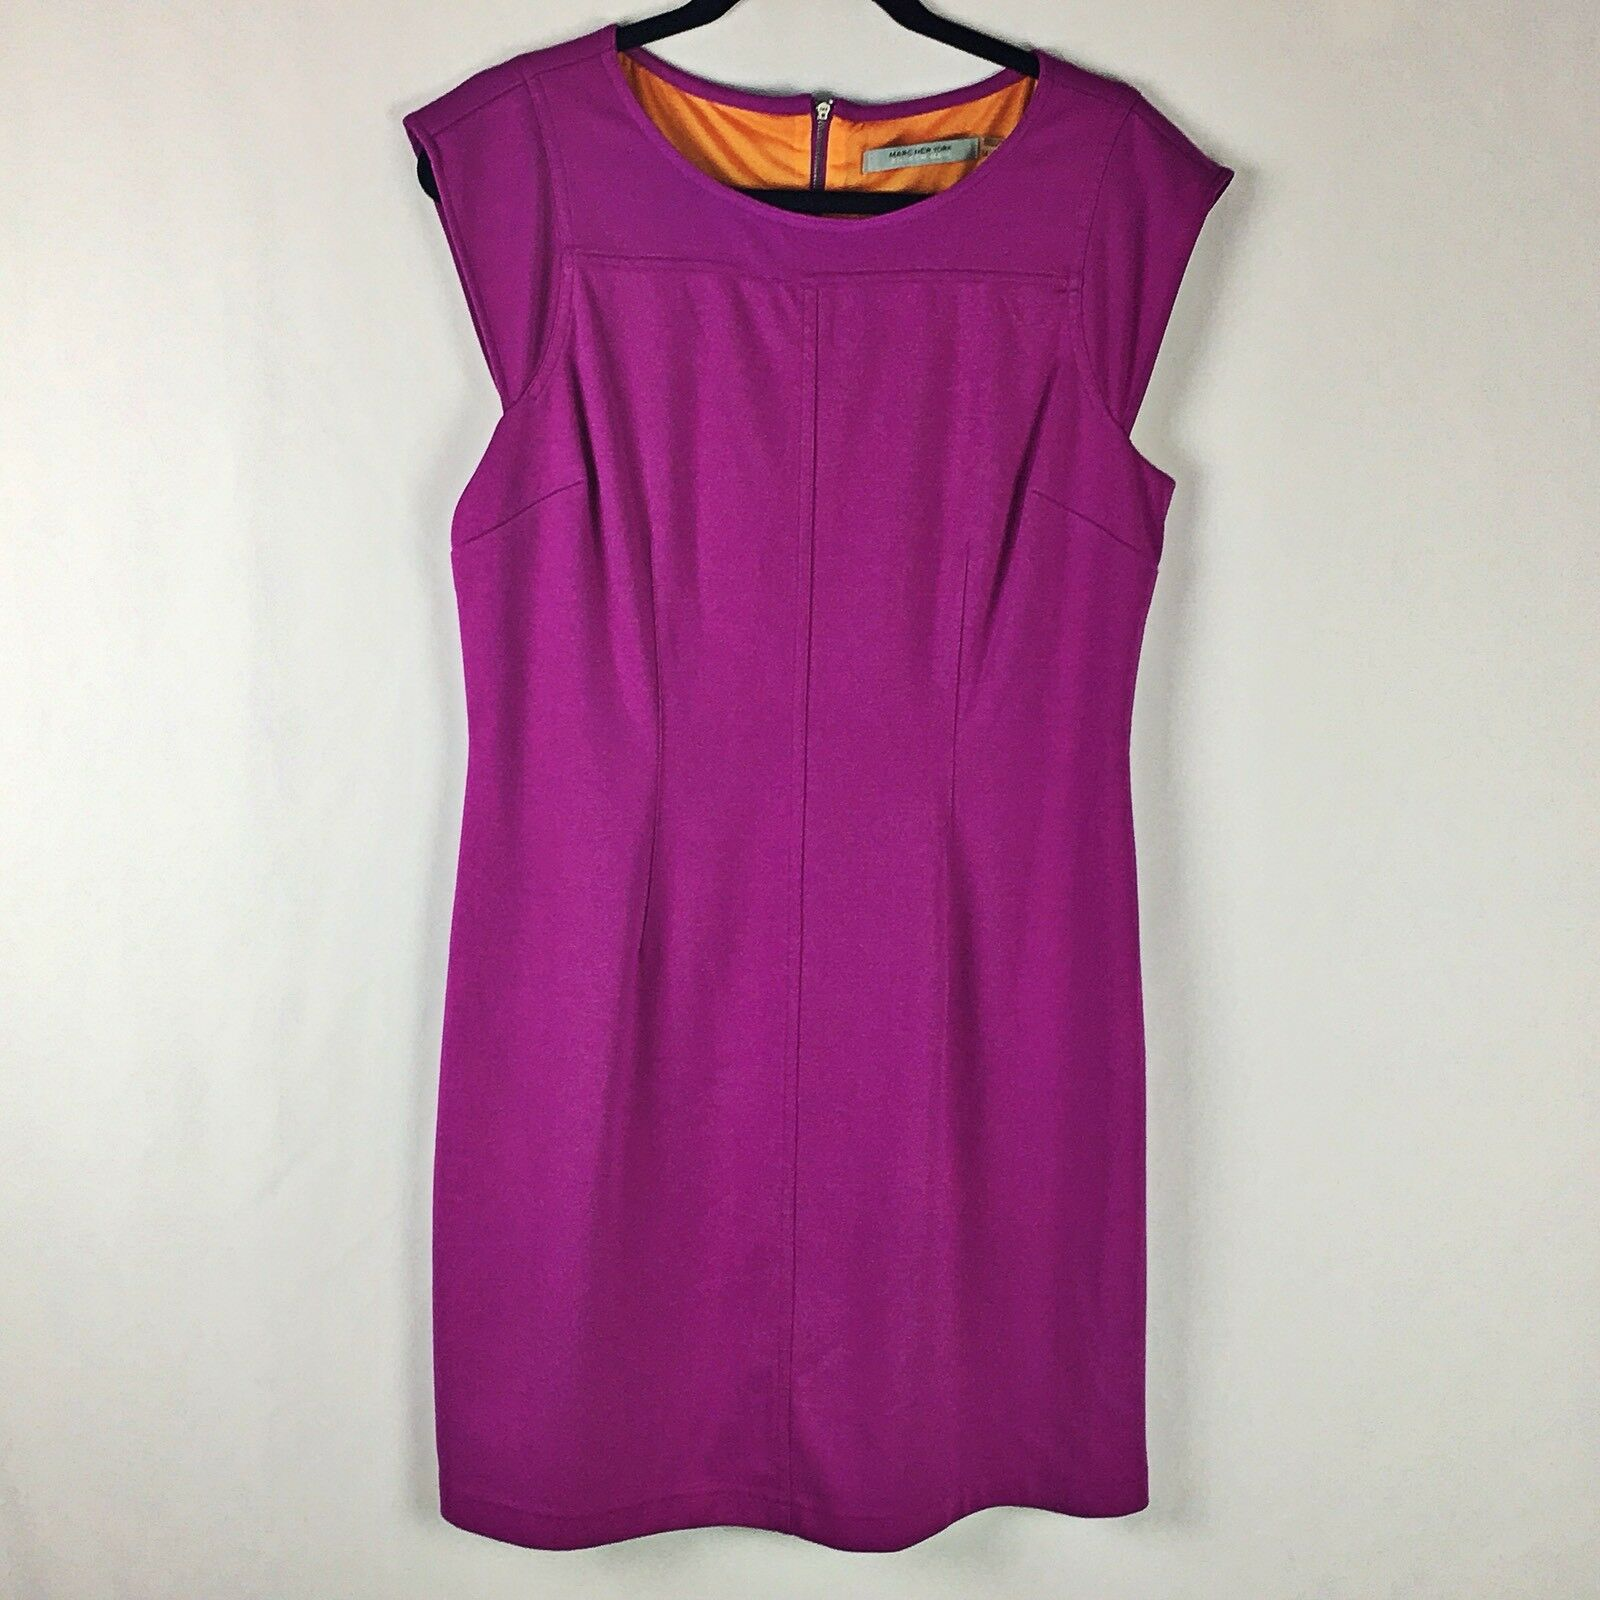 Marc New York Women's Pink Cap Sleeves Dress Size 14